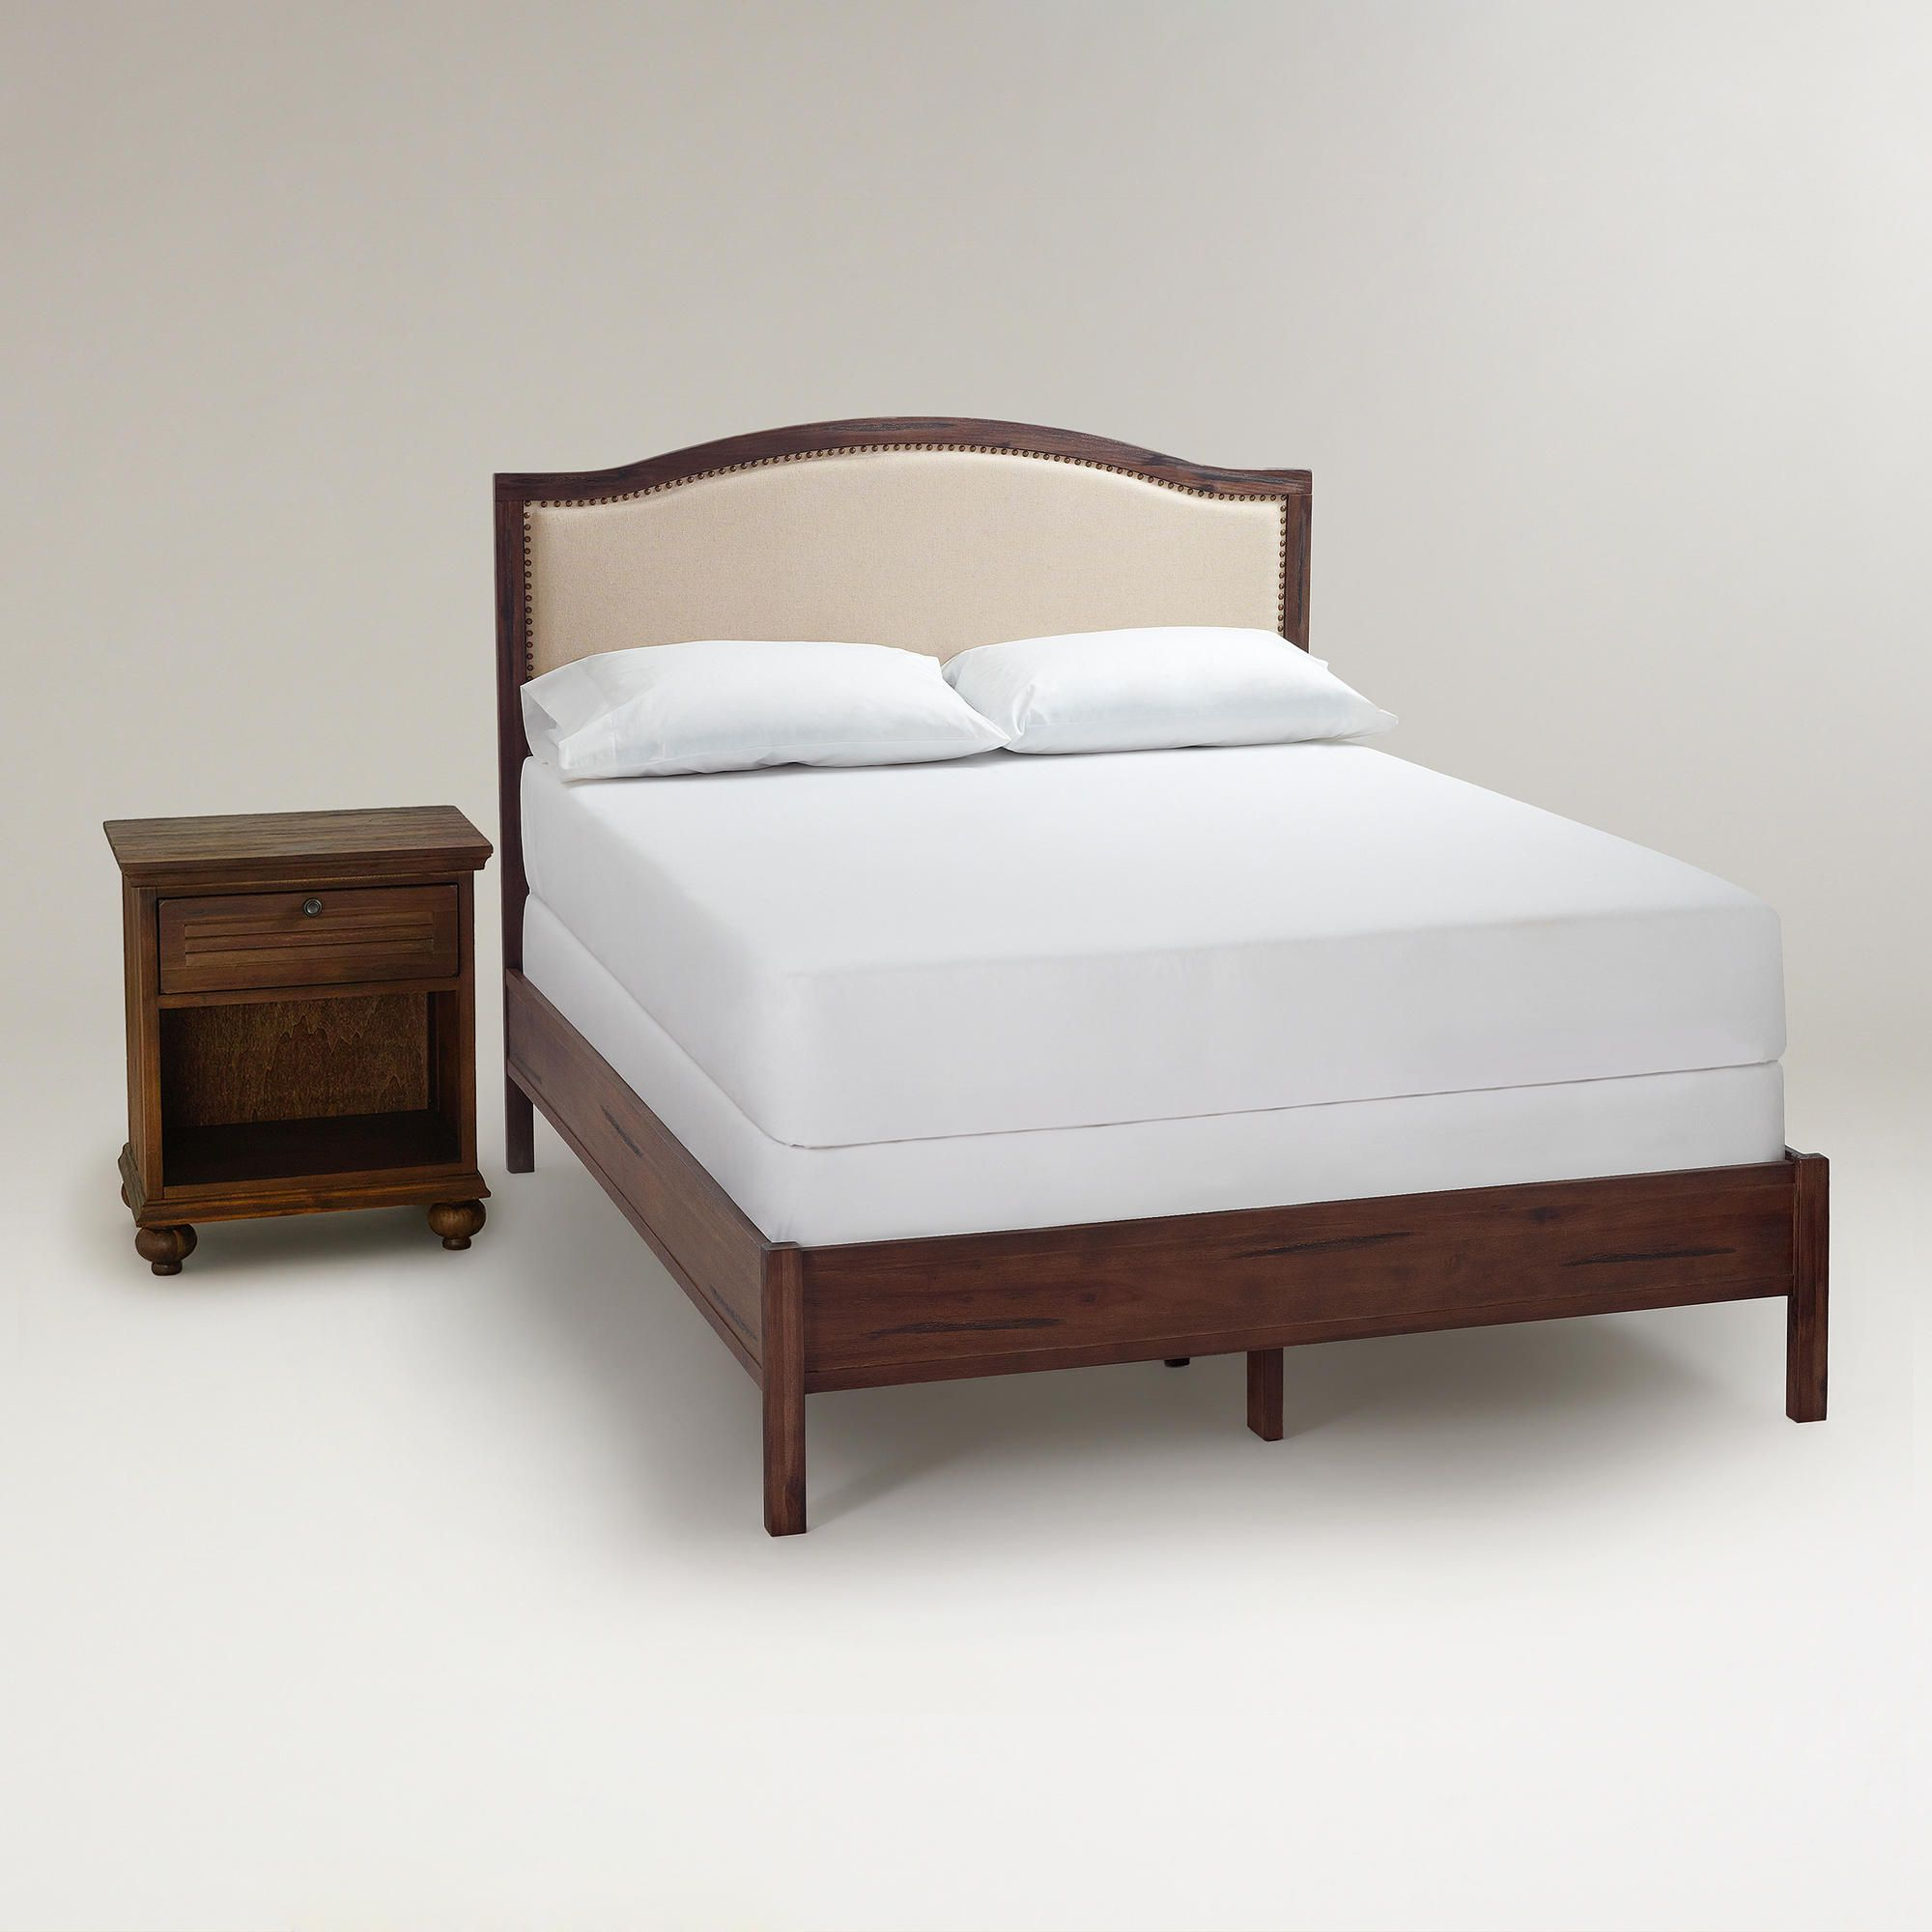 Courtney Furniture Collection Bed Frame And Headboard Queen